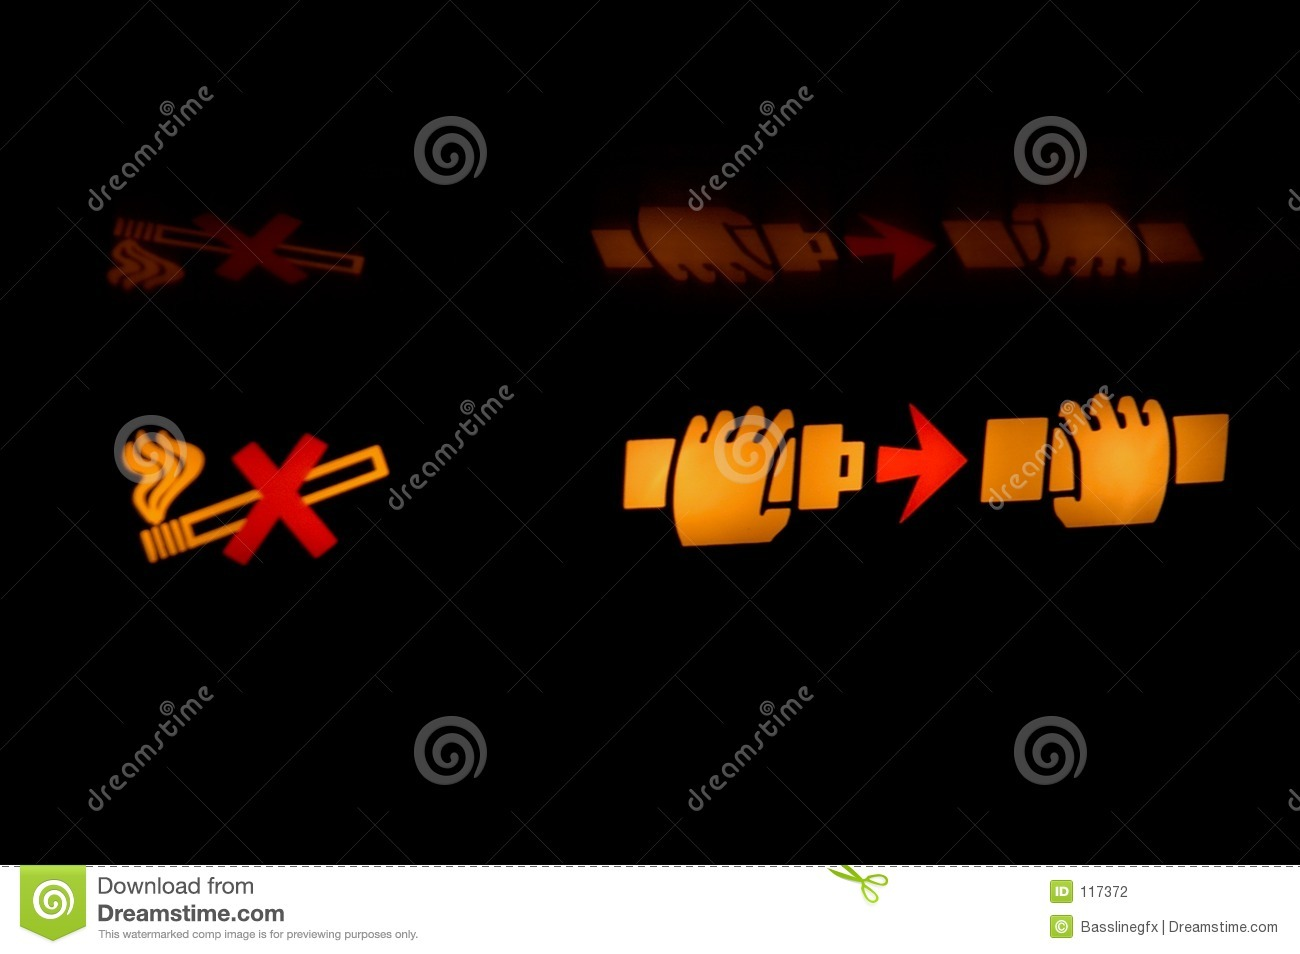 Displaying 20> Images For - Airplane Seatbelt Sign Clipart...